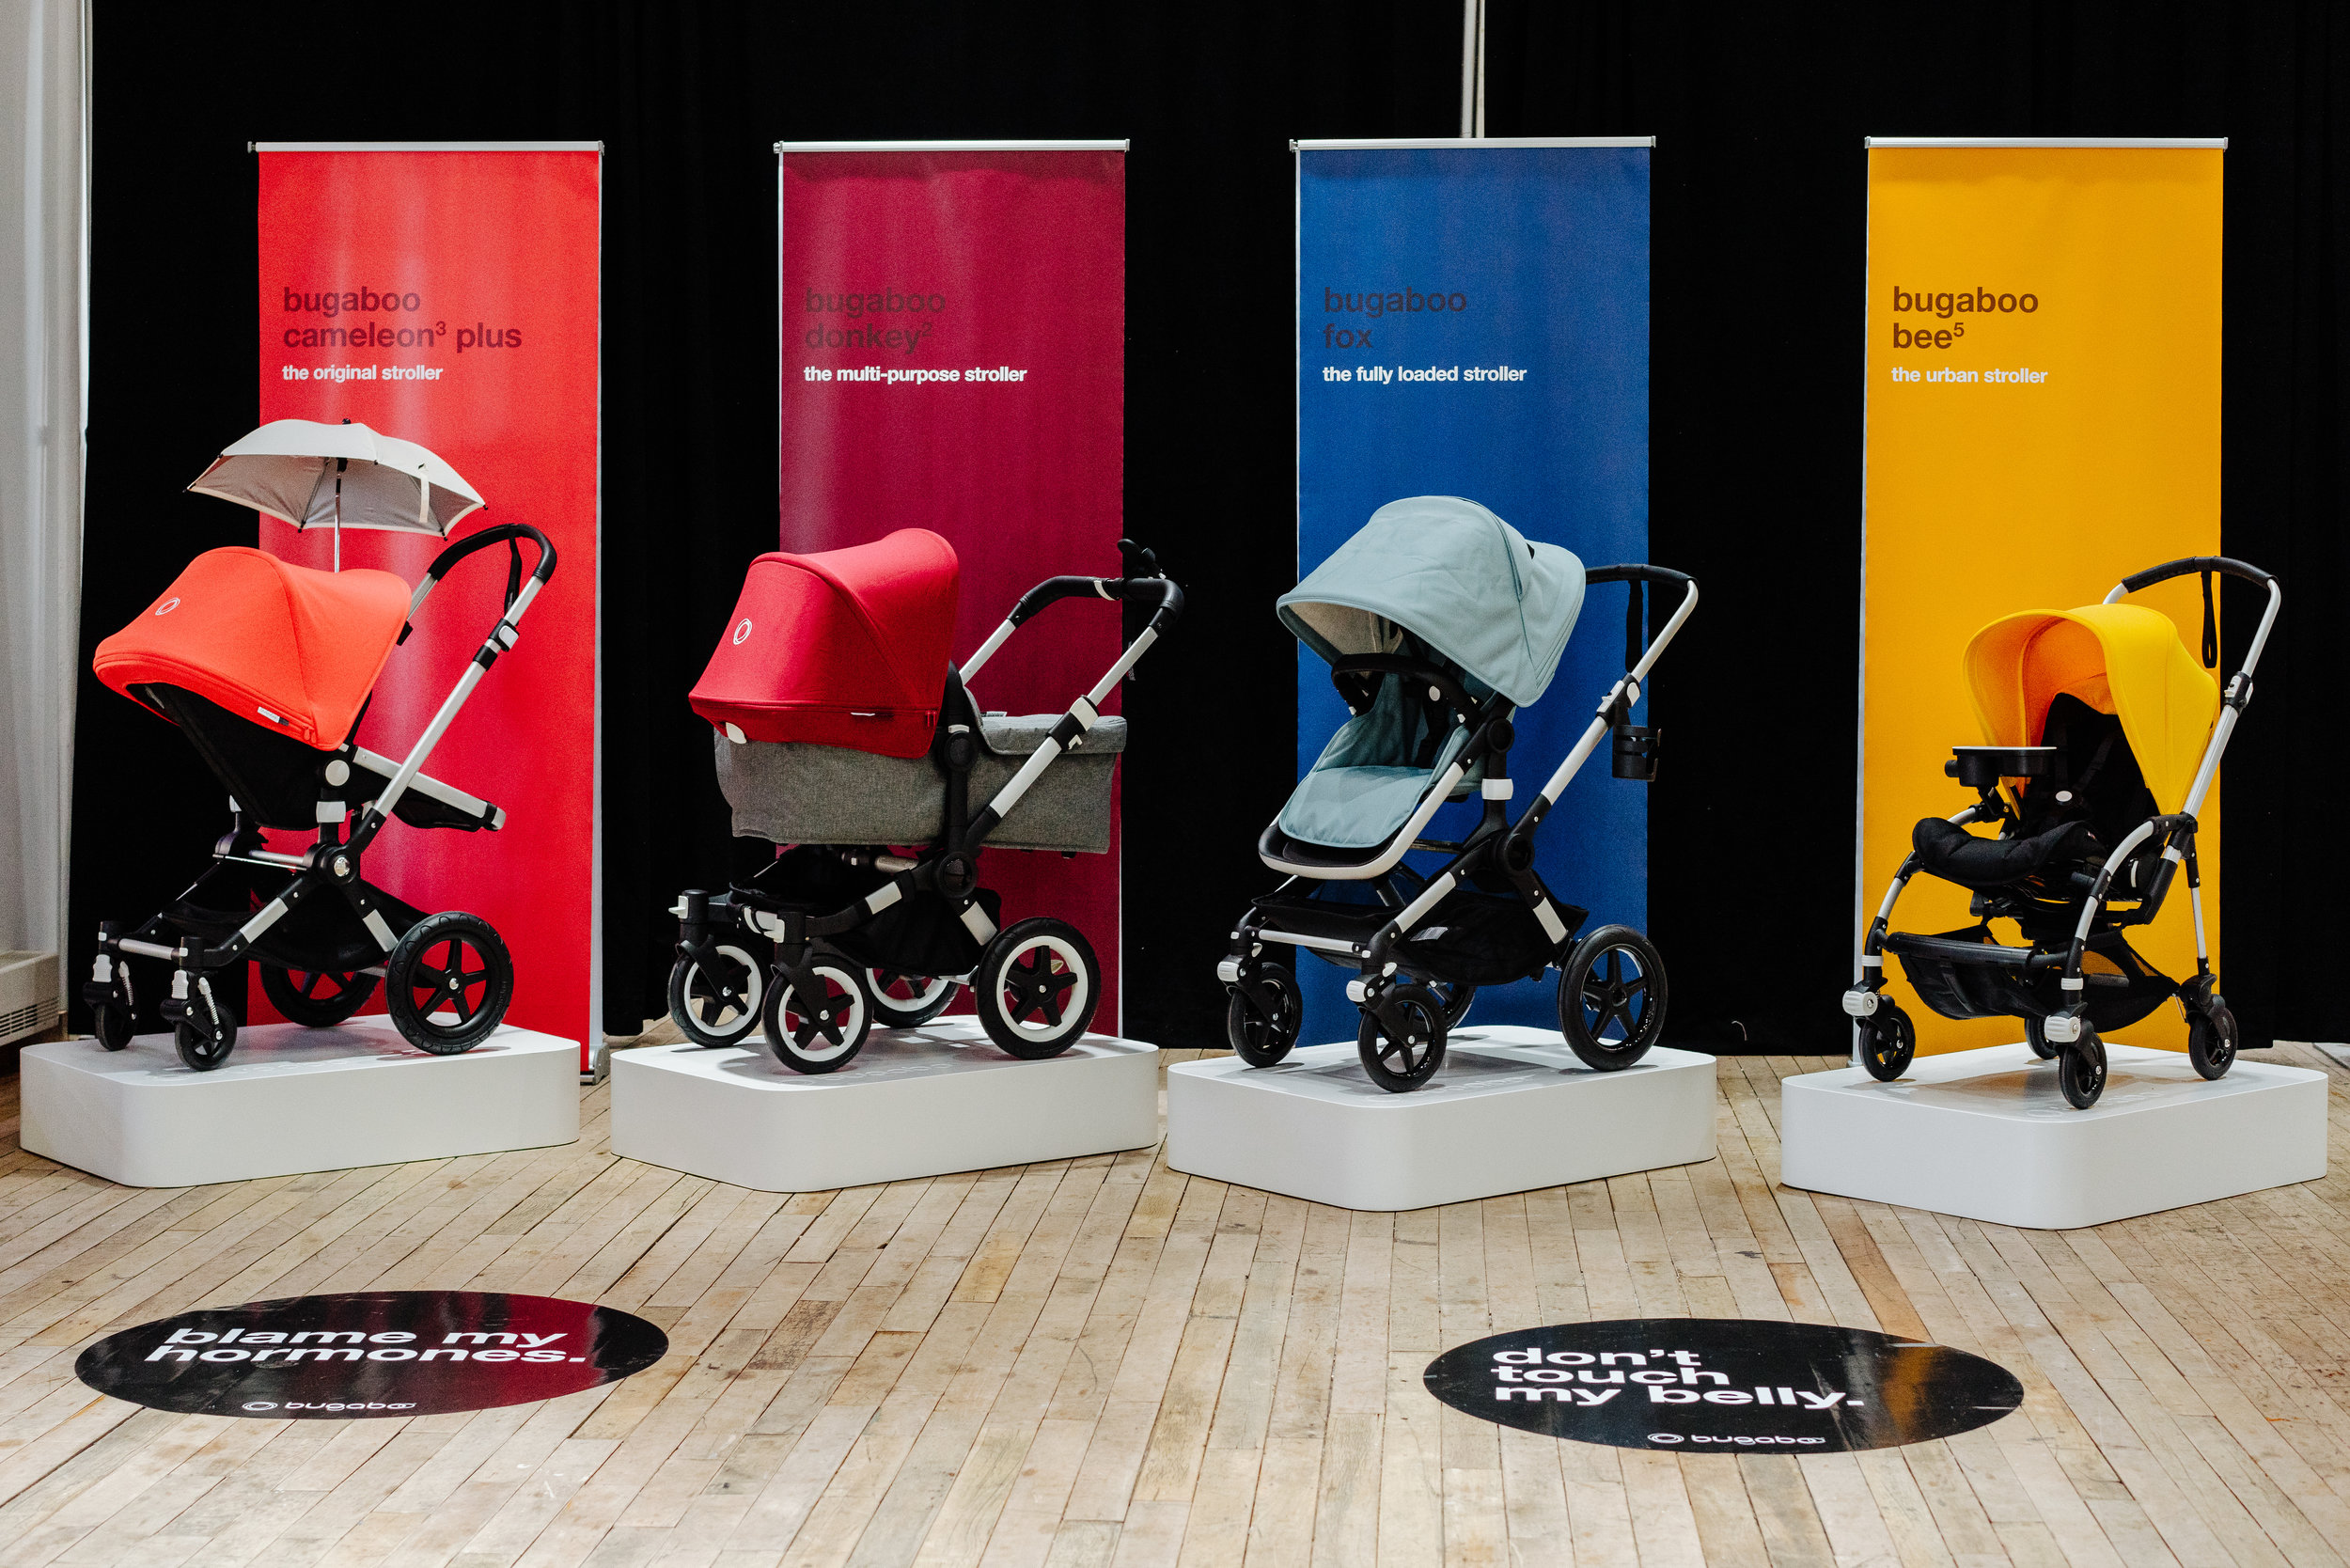 BUGABOO NEW PRODUCT LAUNCH - Press event to announce the launch of new Bugaboo strollers